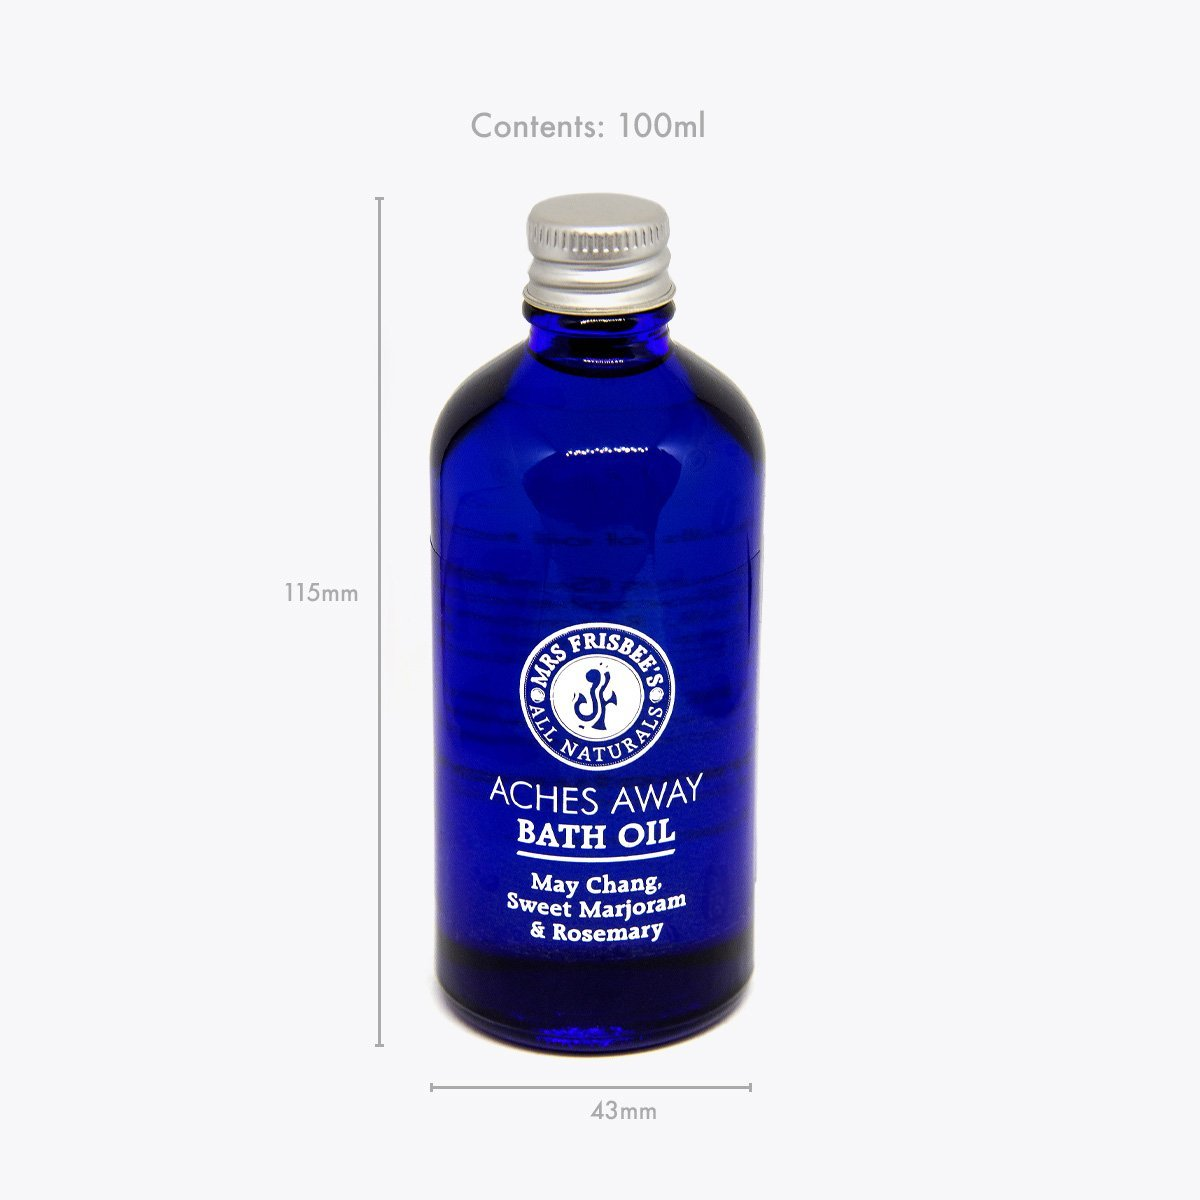 Aches Away Bath Oil in glass oil, product measurements